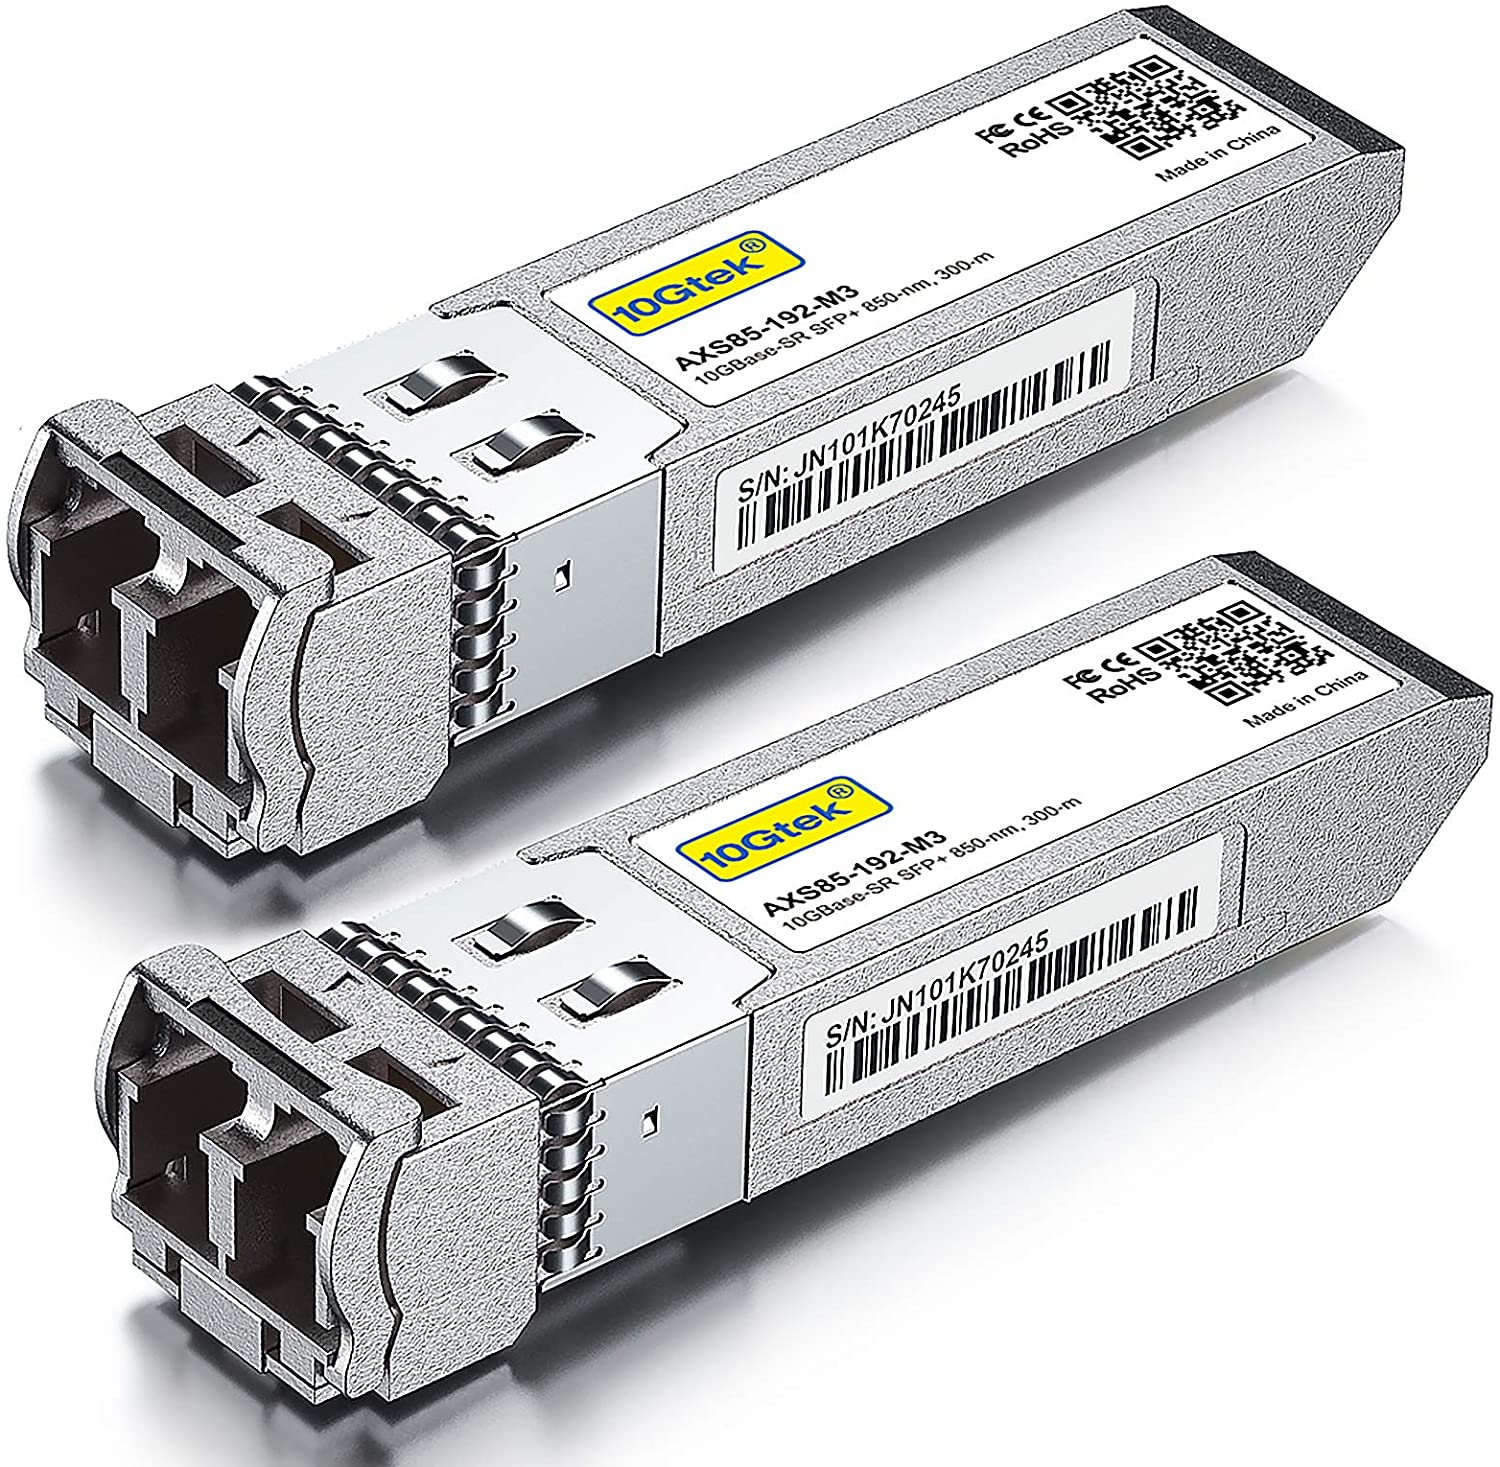 10GBase-SR SFP+ Transceiver, 10G 850nm MMF, up to 300 Meters, Compatible with Cisco SFP-10G-SR,Pack of 2